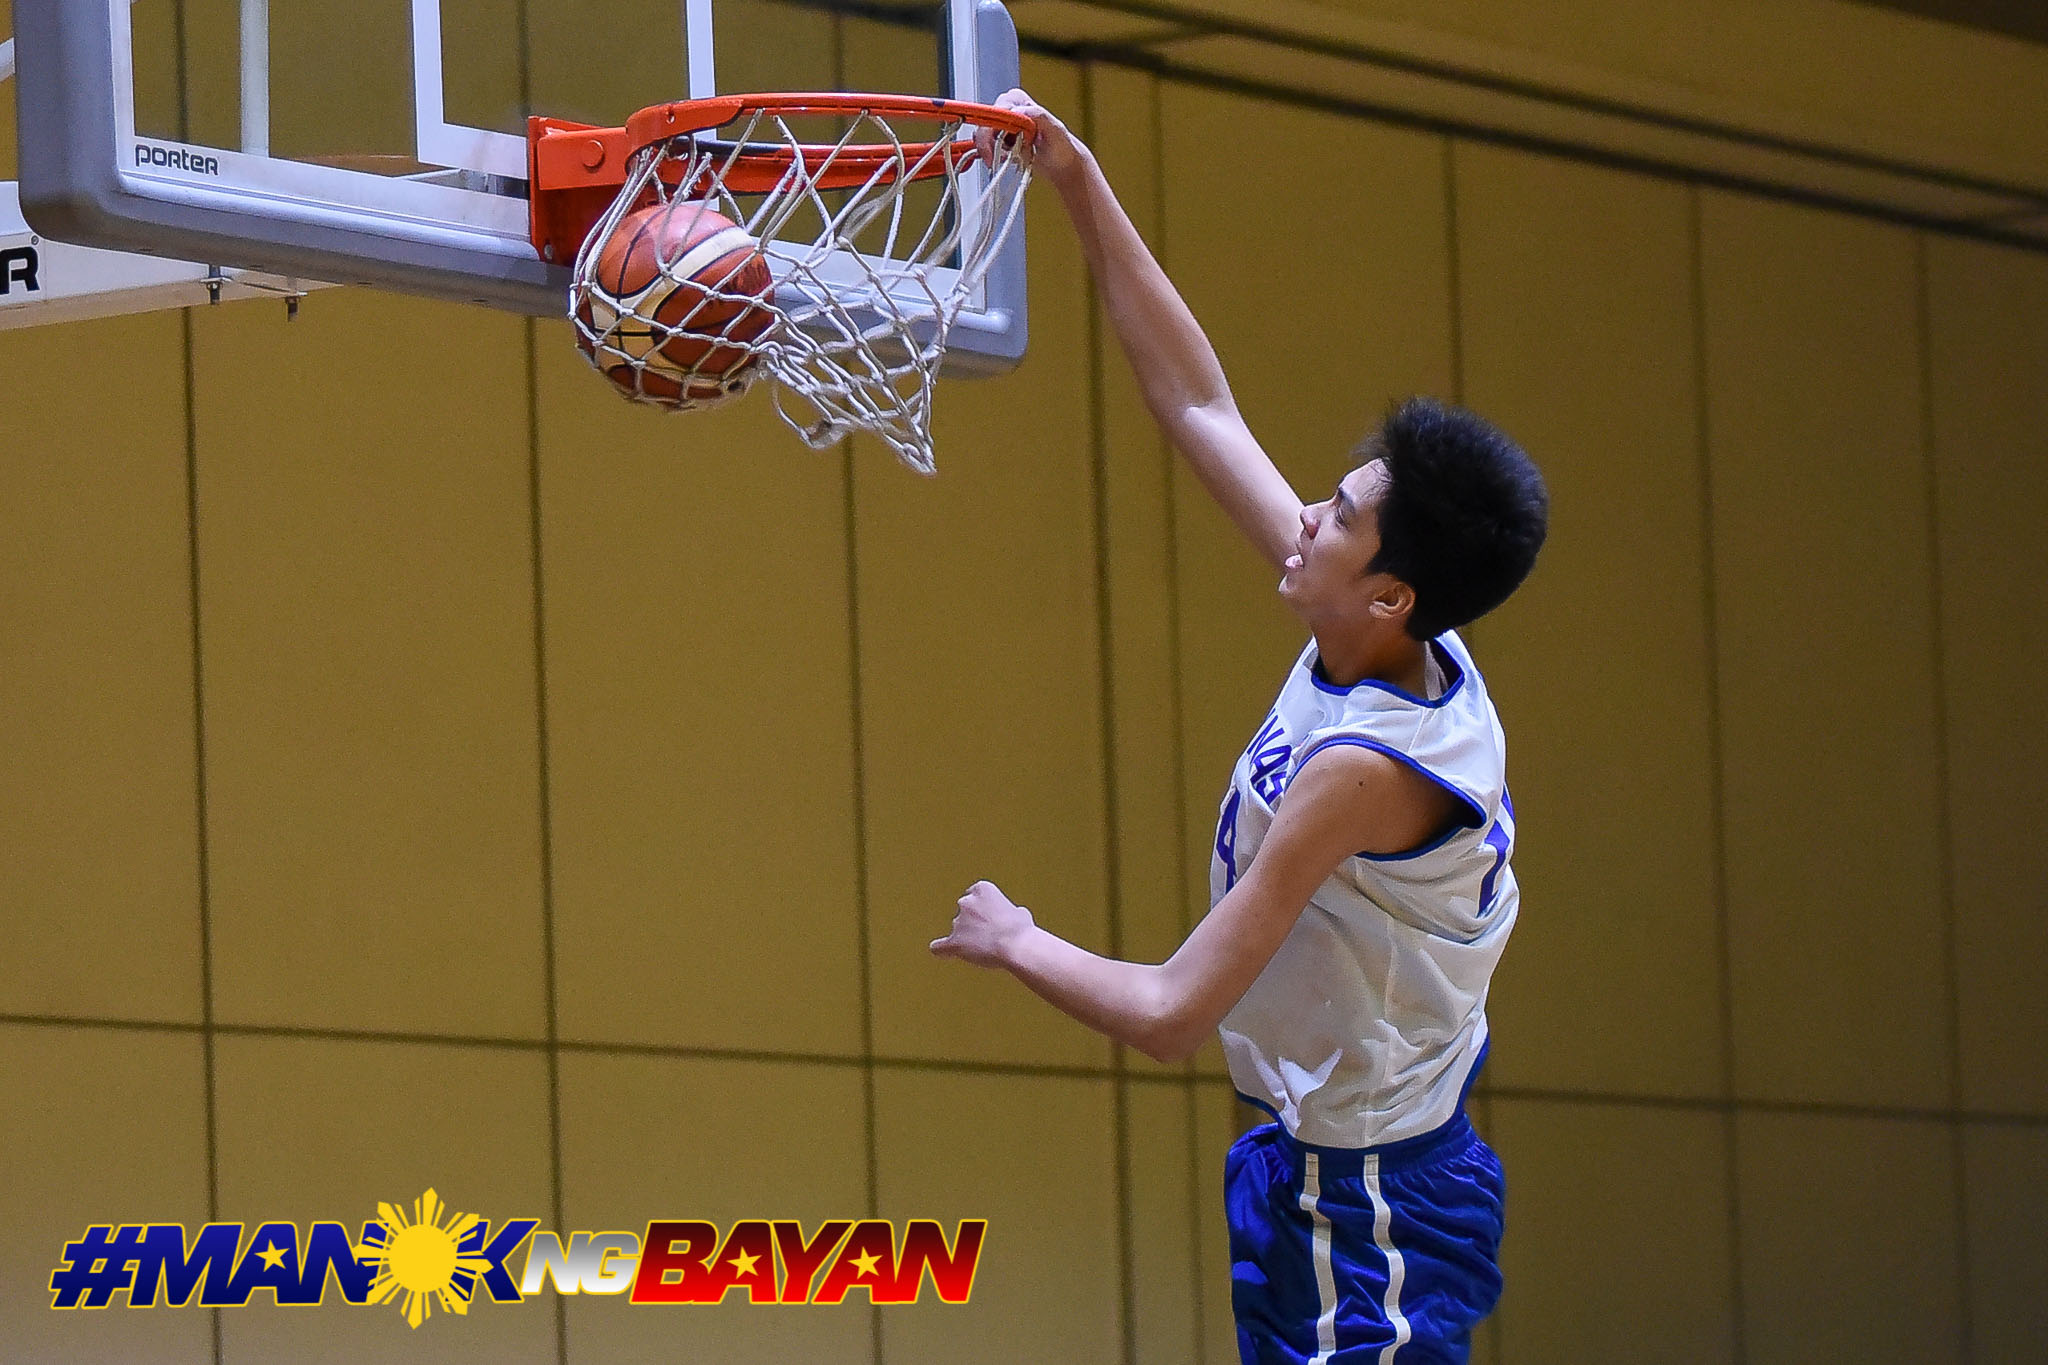 Tiebreaker Times Kai Sotto holds his own during first Gilas practice Basketball Gilas Pilipinas News  Kai Sotto June Mar Fajardo Chot Reyes 2023 FIBA World Cup